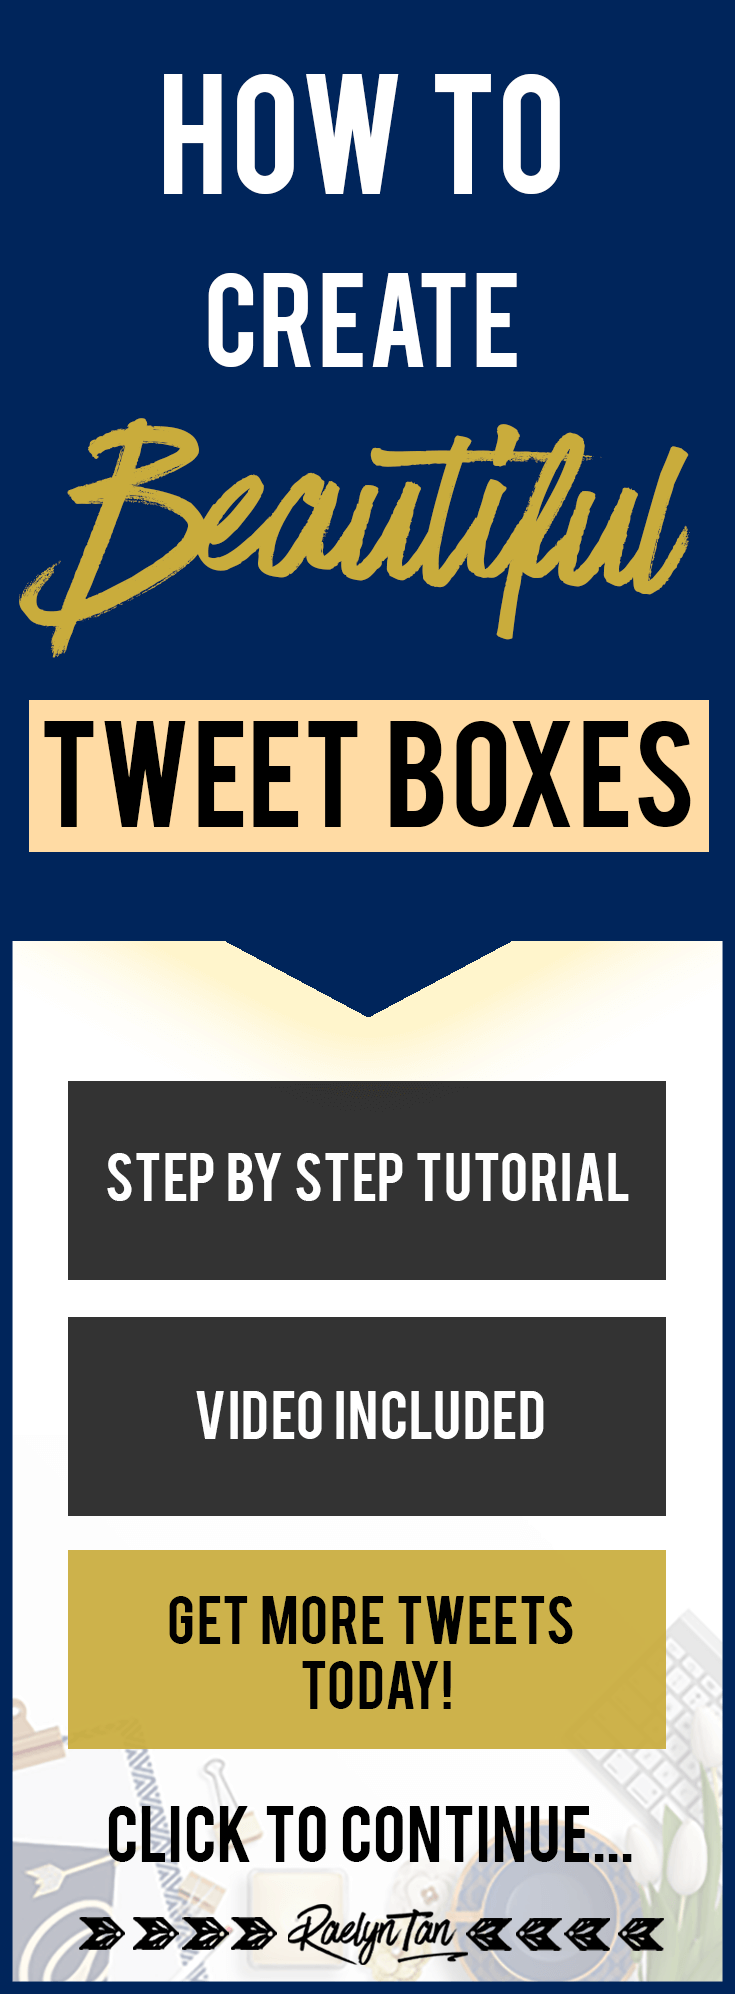 How to create beautiful tweet boxes on your website for FREE using Coschedule's free Click To Tweet WordPress plugin. This is a great way to promote your blog via your readers with social media.